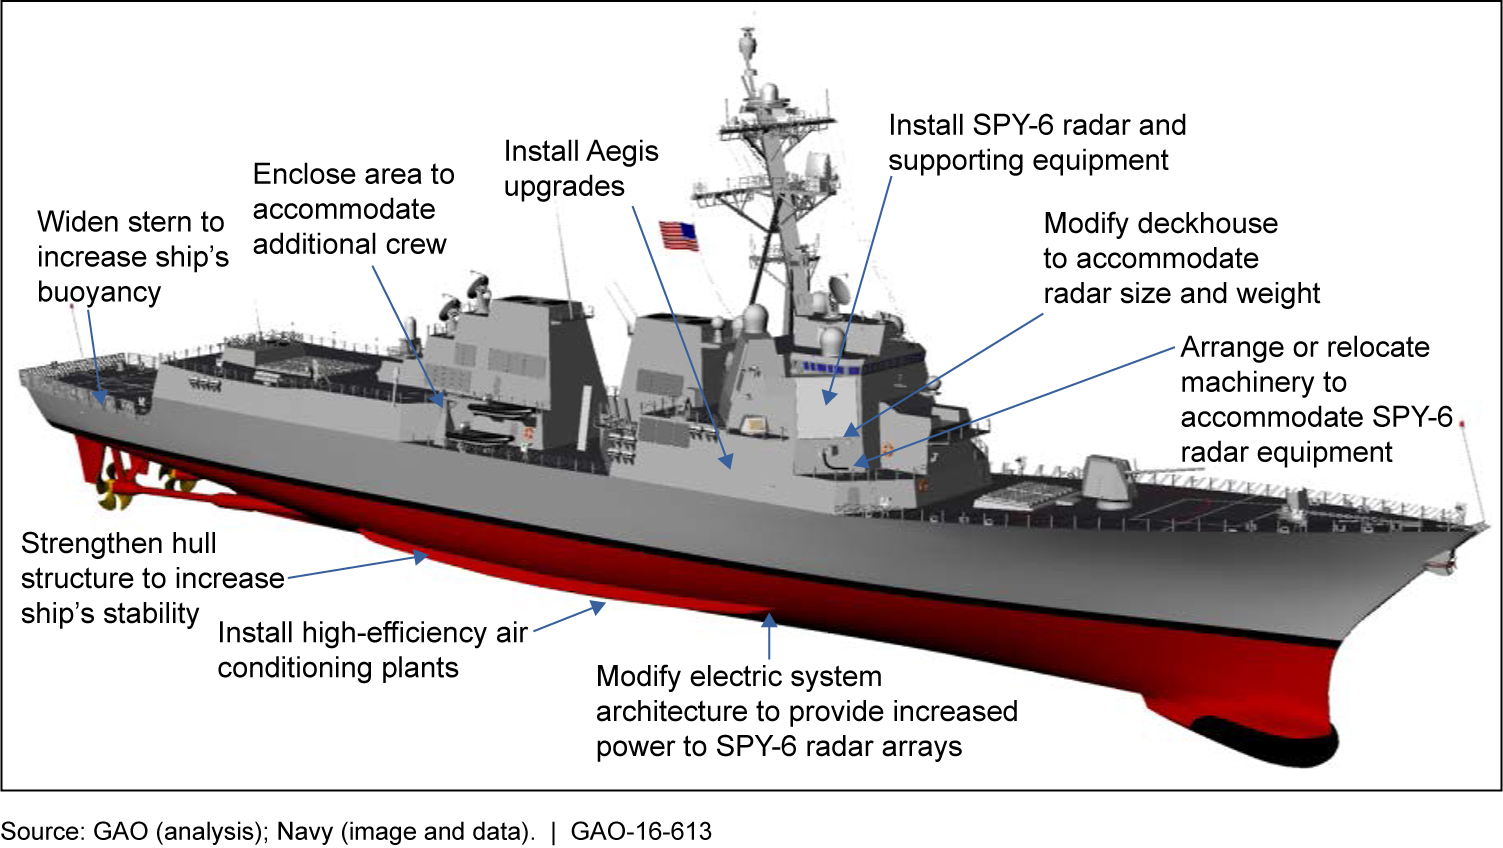 Flight III Ship Configuration Changes Related to SPY-6 Radar Introduction